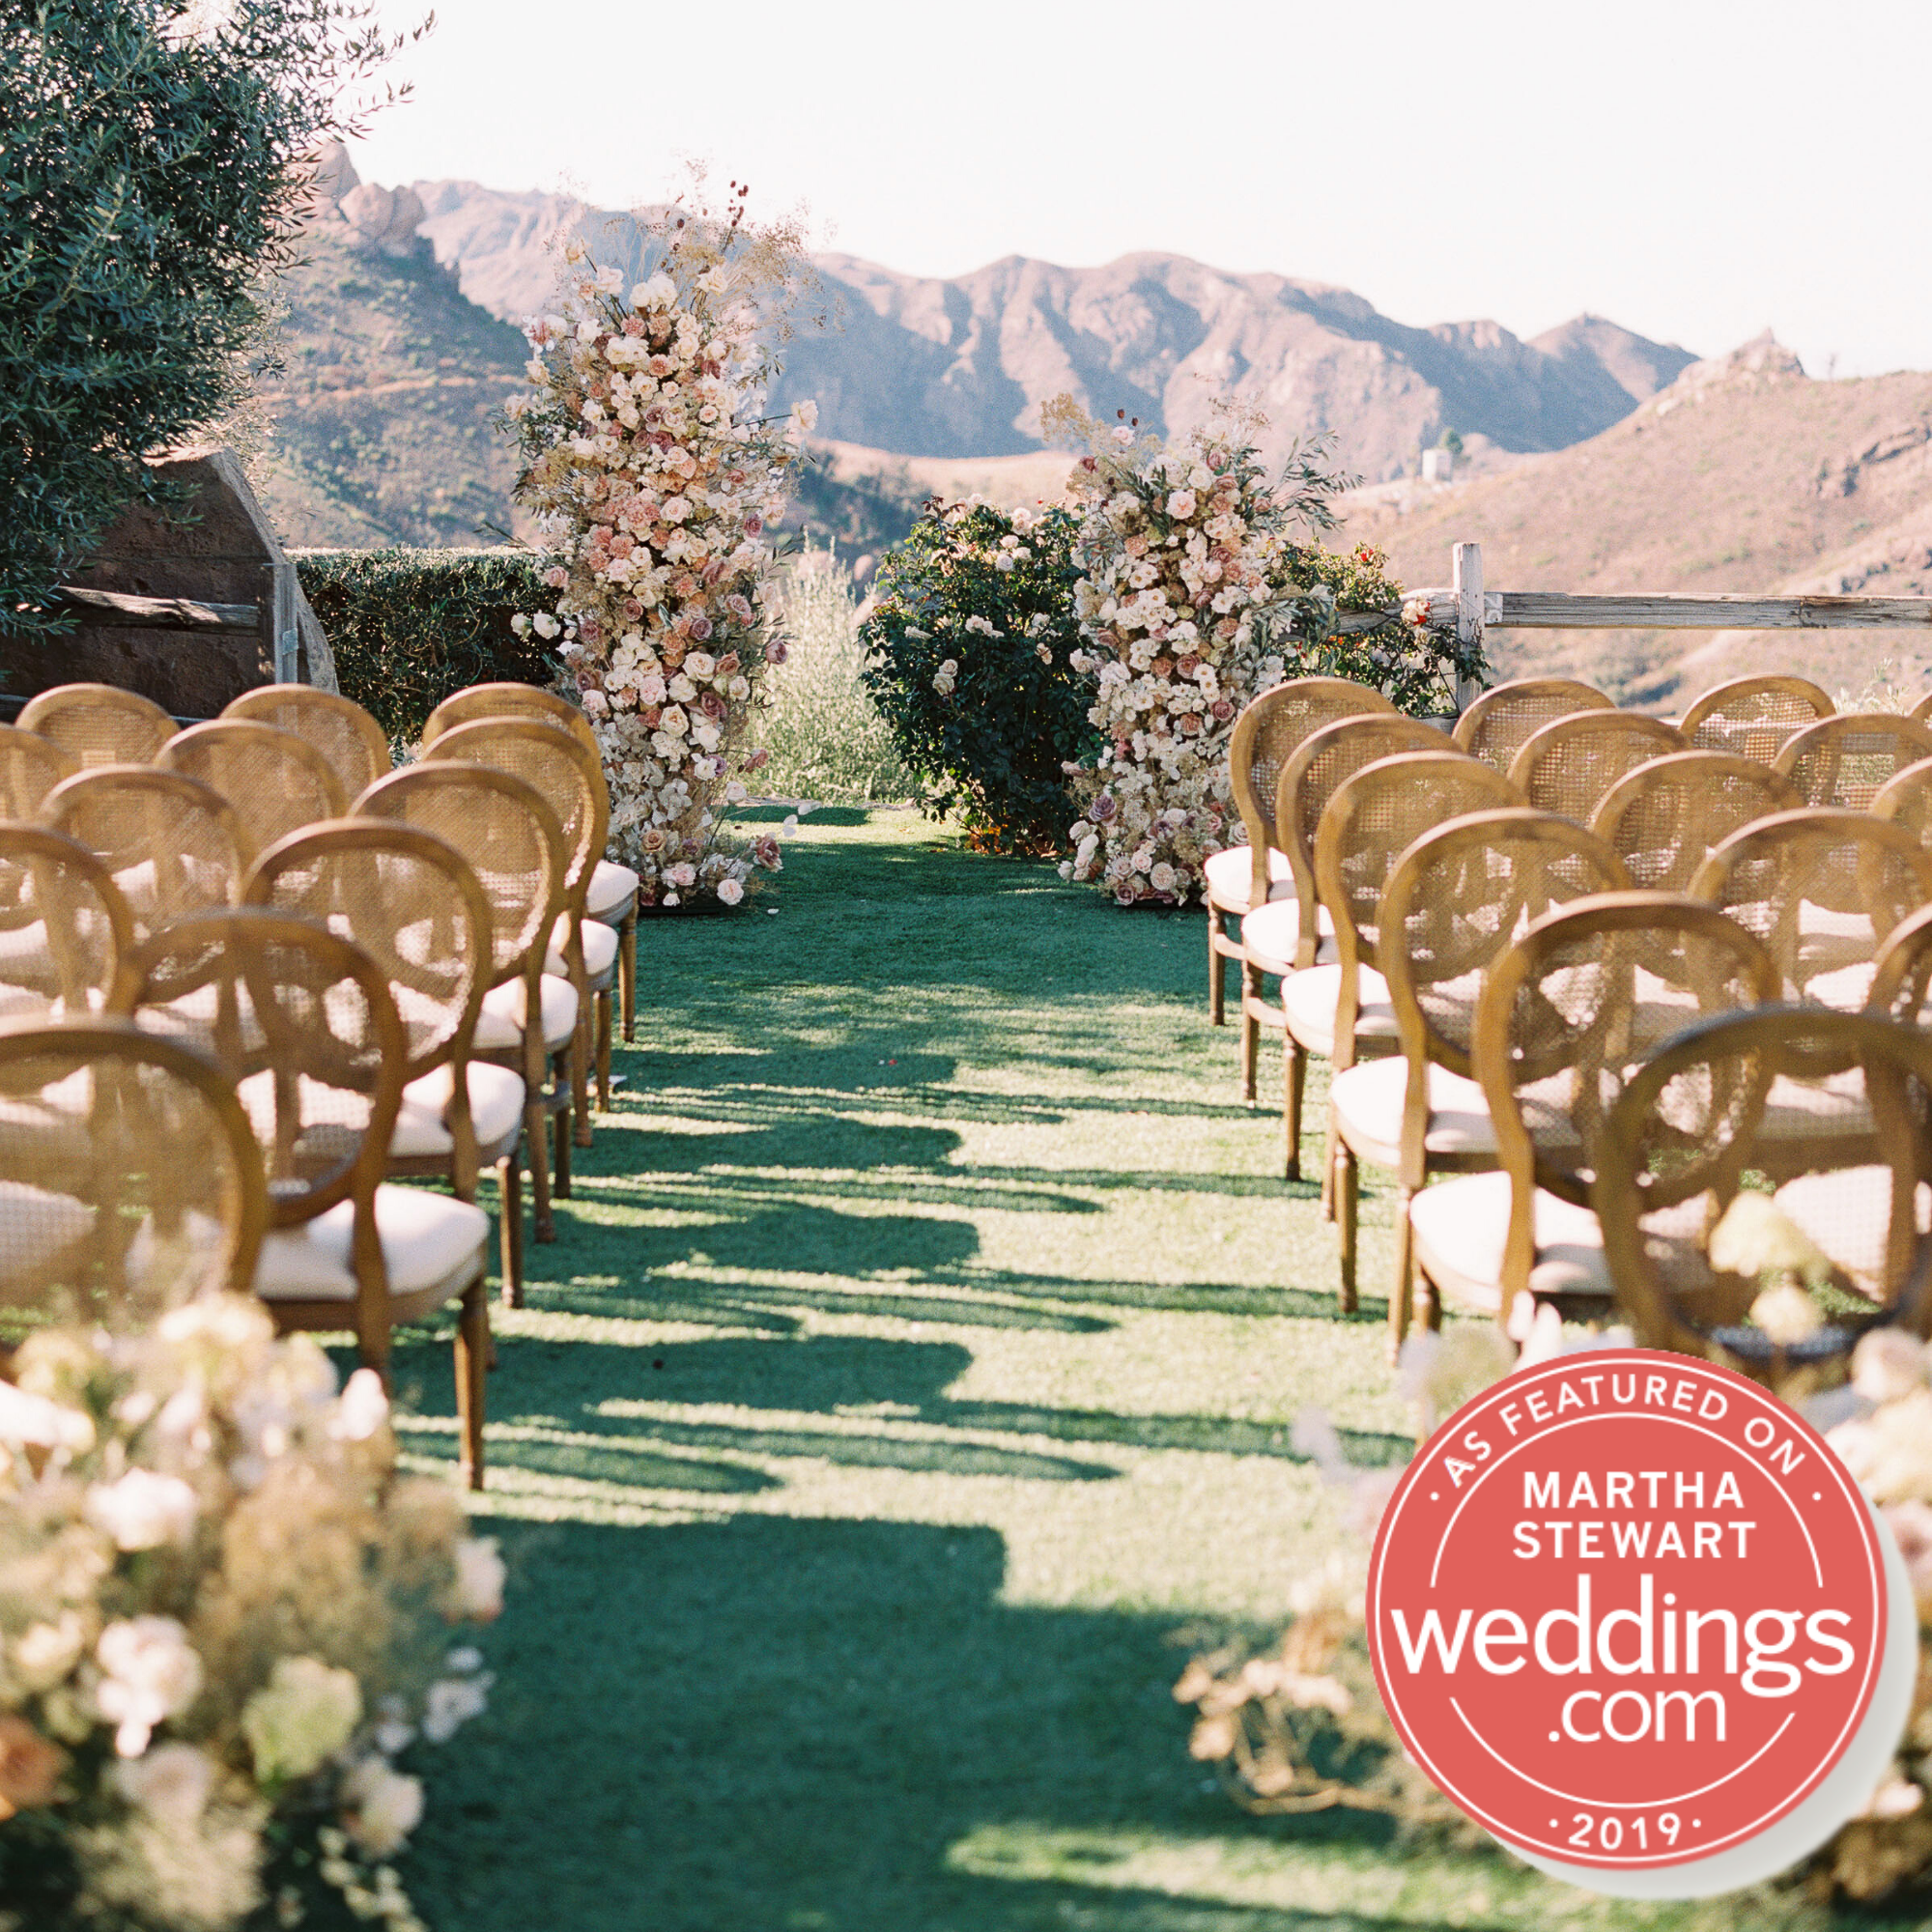 rentals, party rentals, wedding rentals, malibu wedding, cielo farms wedding, wedding rentals, los angeles rentals,